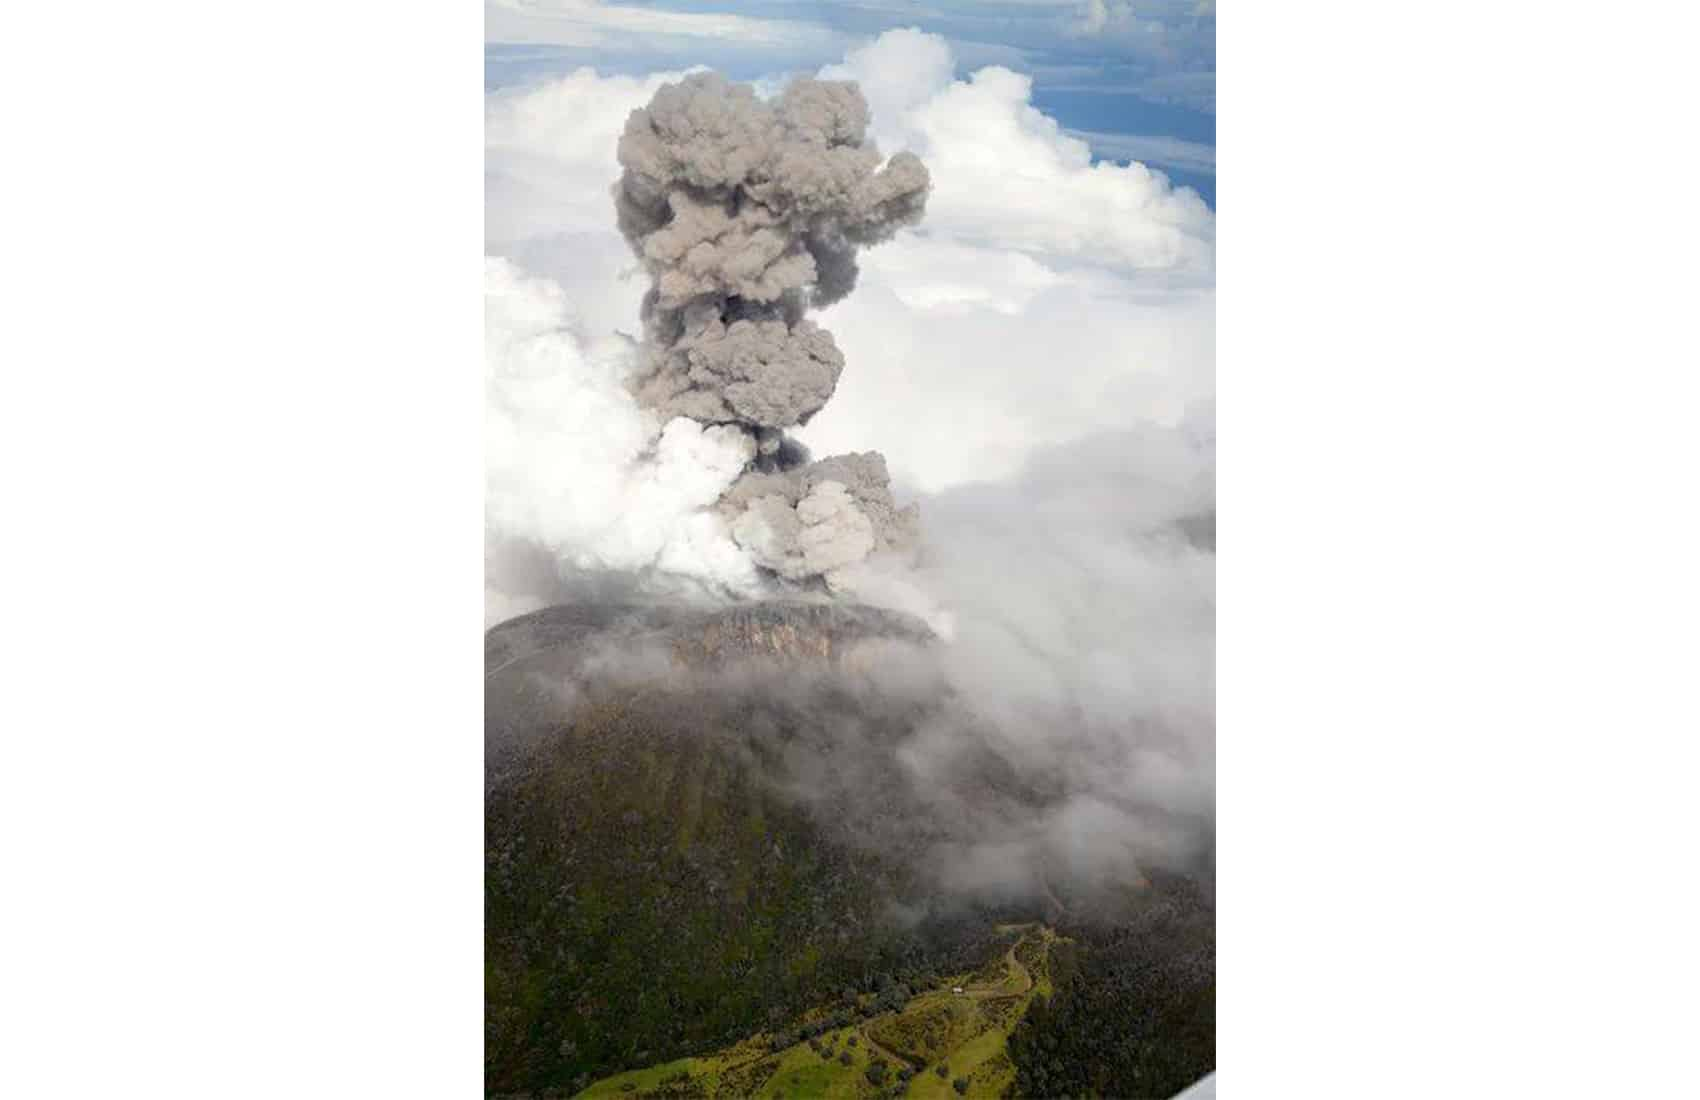 Turrialba Volcano Spewed Ash Across Costa Rica This Week In Its Largest Eruption 150 Years Via Facebook